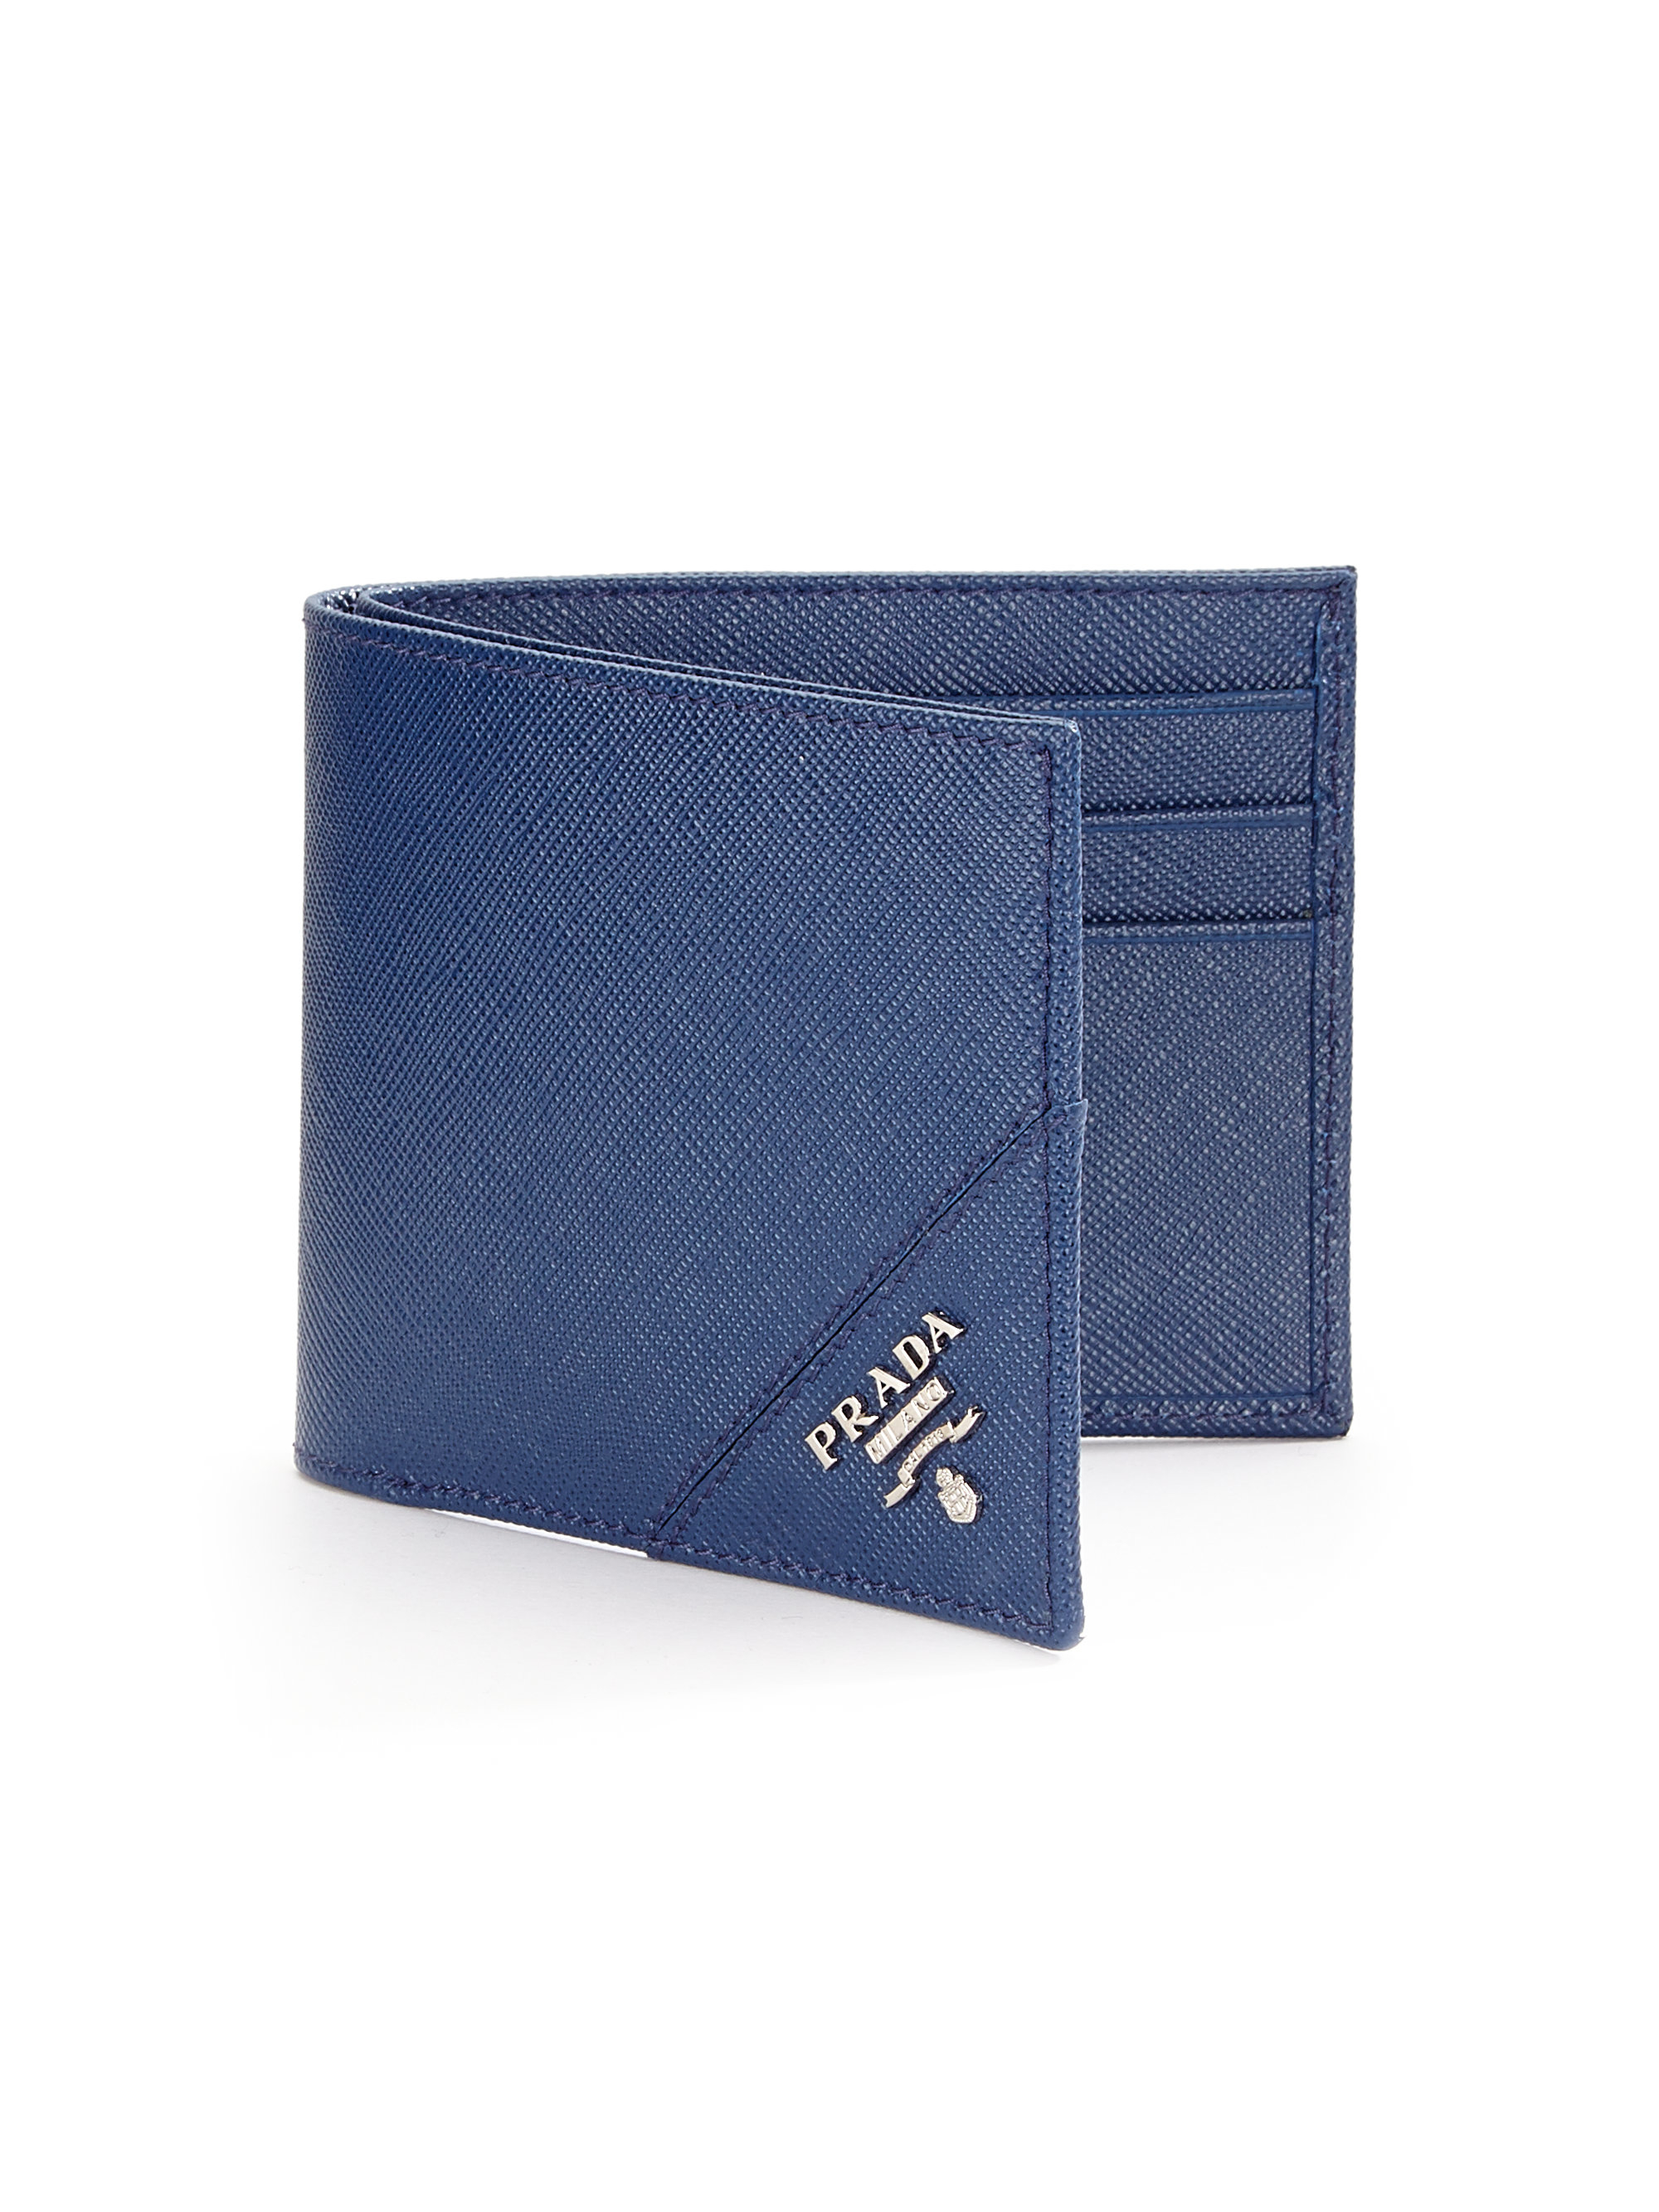 Prada Orizzontale Wallet in Blue for Men | Lyst